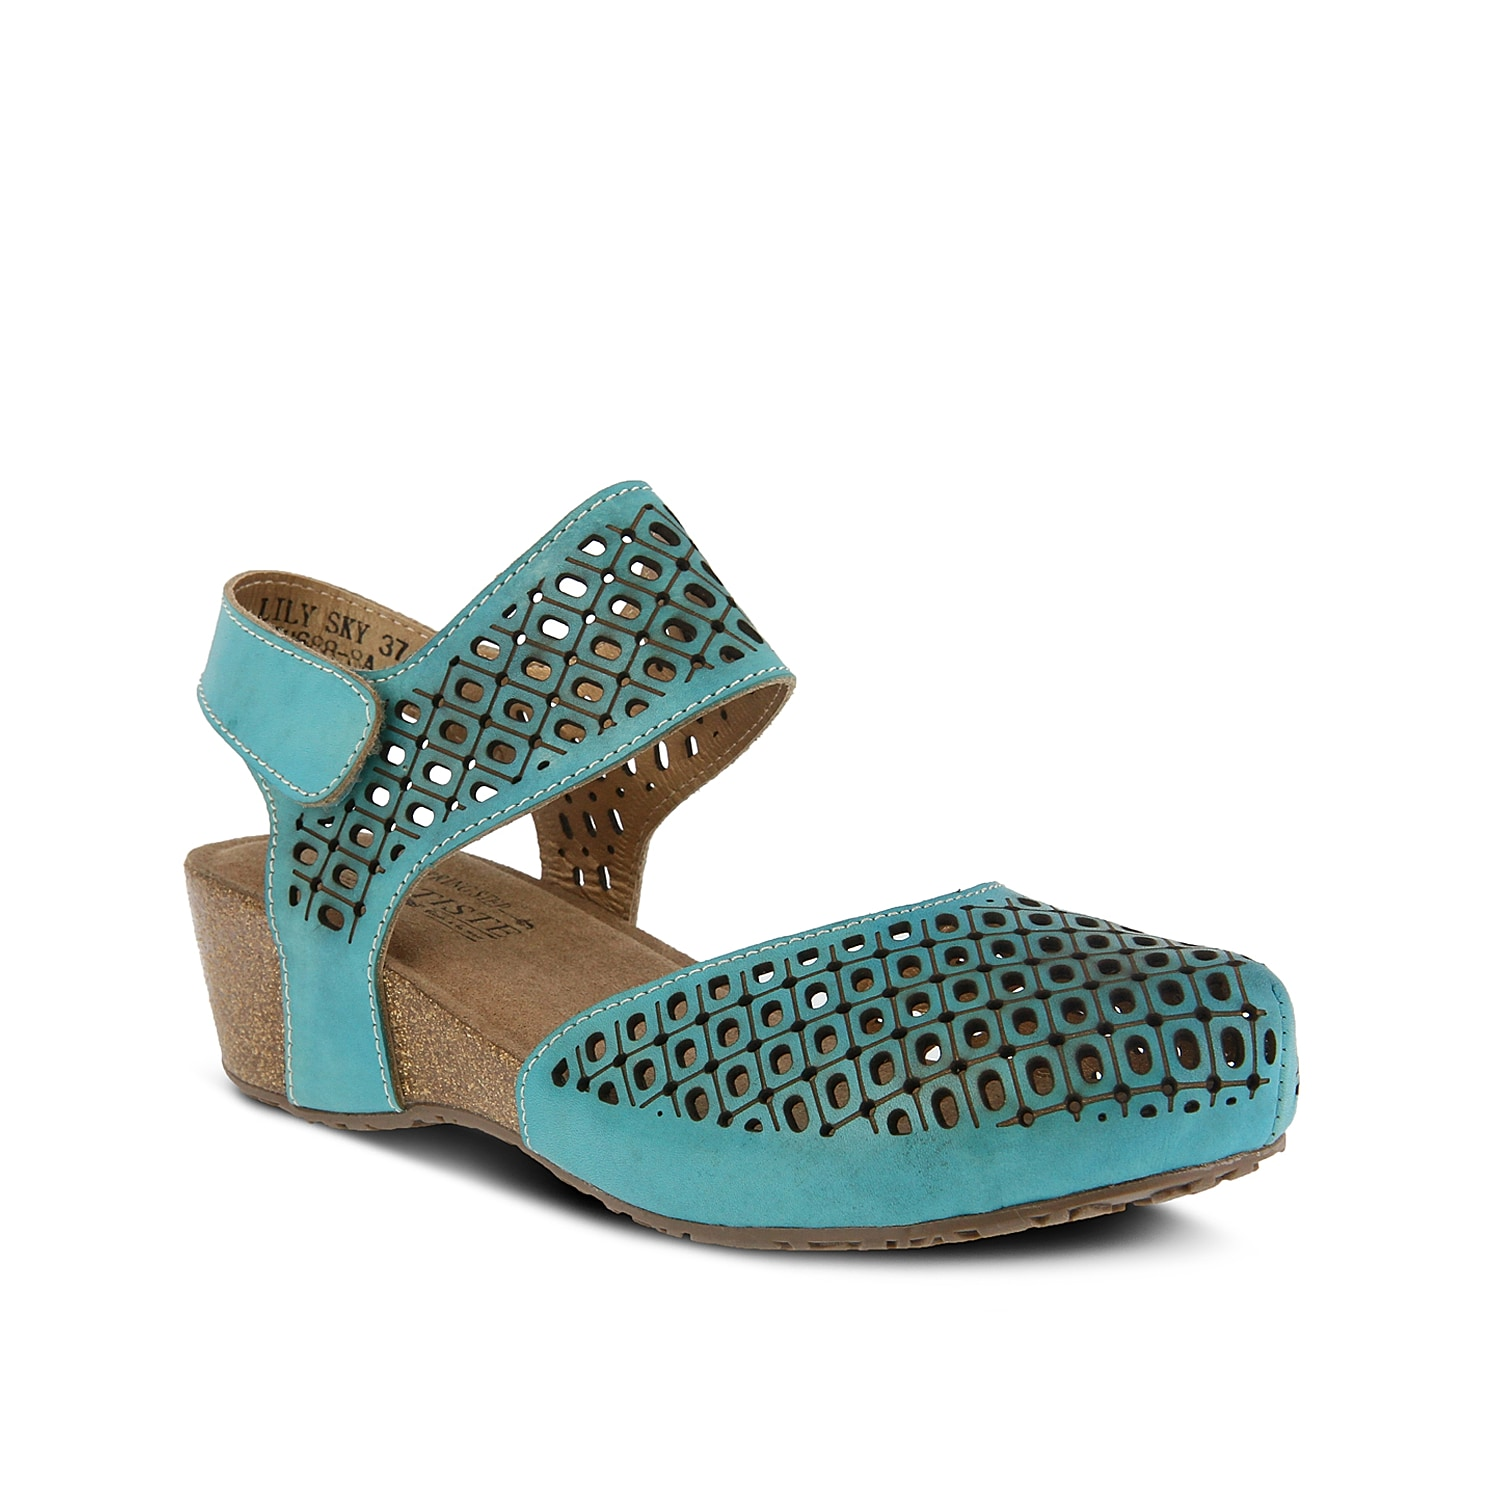 Receive all the compliments when wearing the Poppiri wedge sandal from L\\\'Artiste by Spring Step. A cork midsole and laser cut leather will make it easy to pair with anything in your rotating wardrobe.